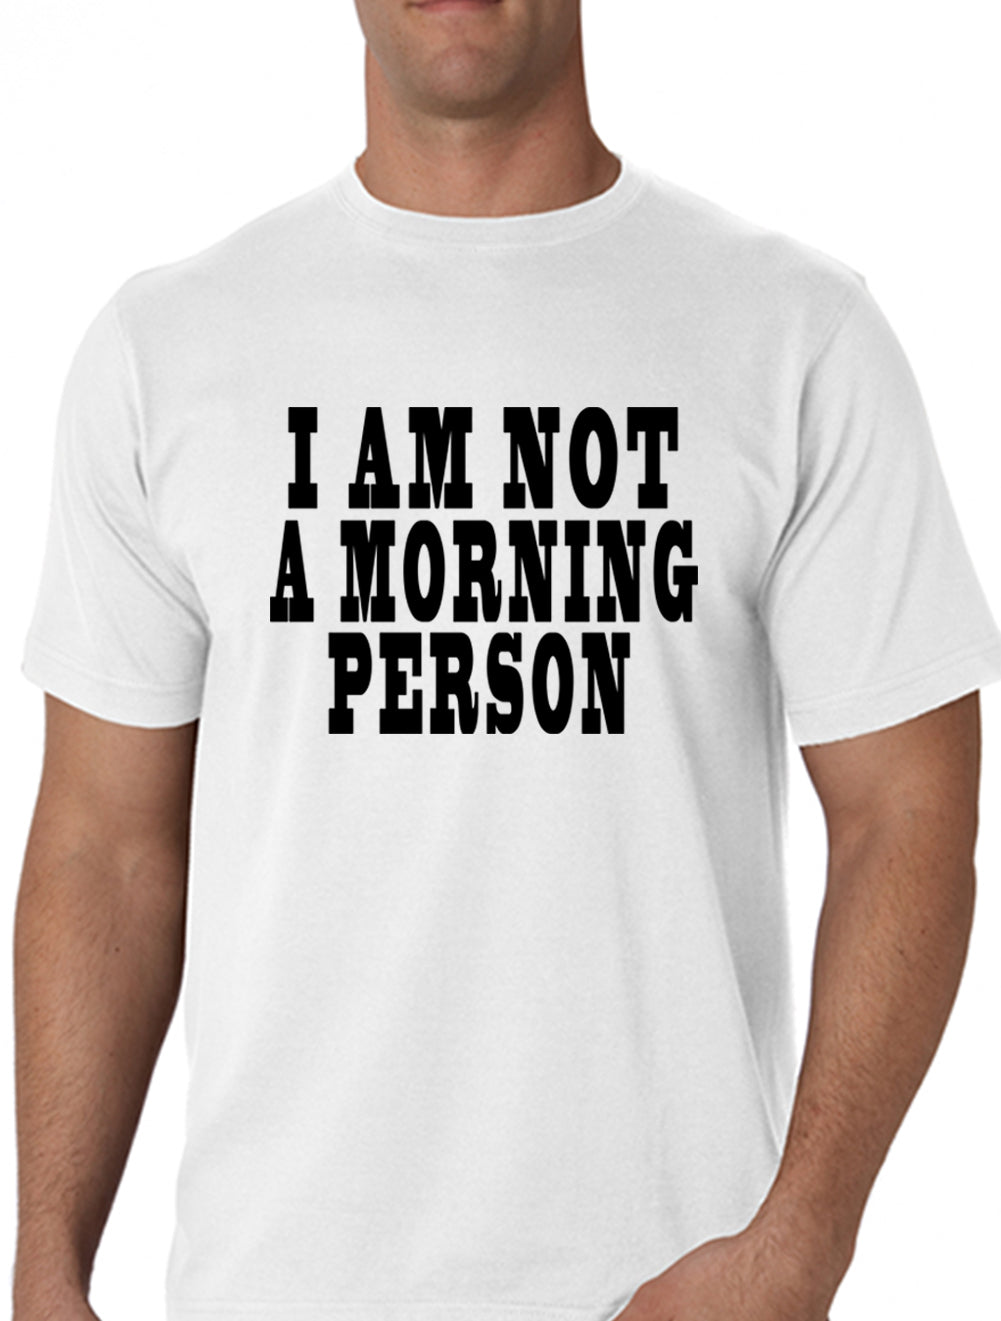 I Am Not a Morning Person Cara Delevingne Vogue Men's T-Shirt